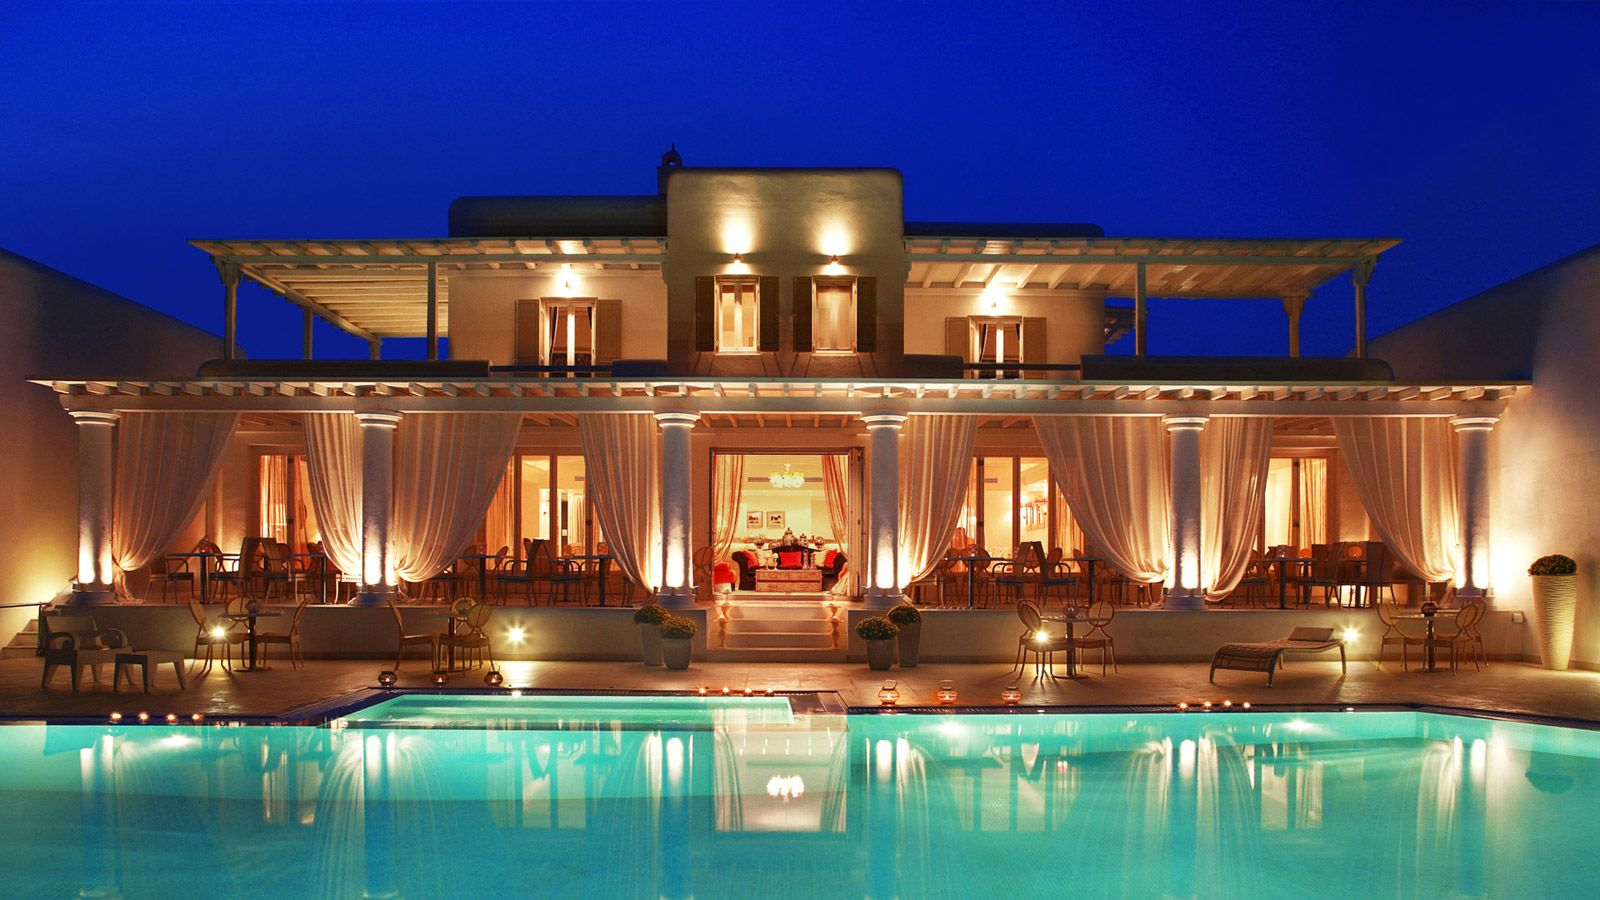 La Residence Mykonos Luxury 5 Star Hotel Suites Boutique Holiday Resort For Vacation In